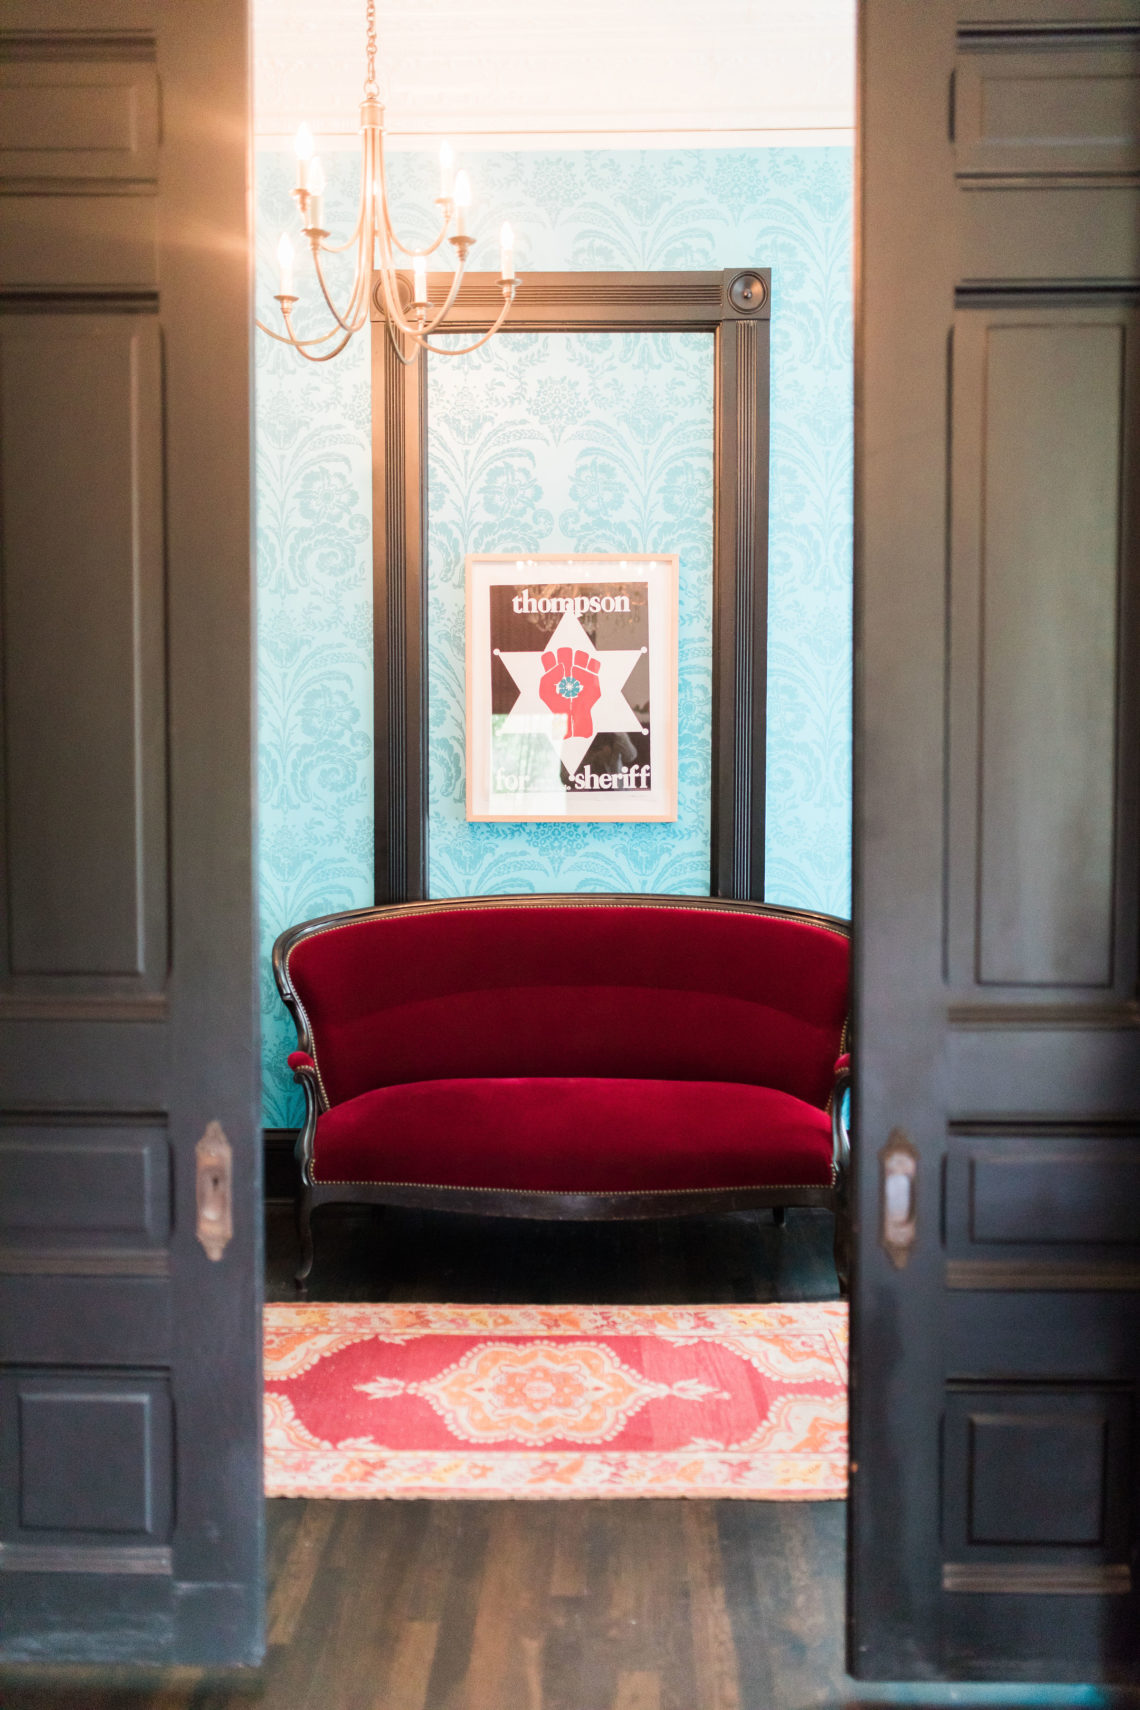 Looking for the coolest hotel in Austin? Look no further than the Hotel Saint Cecilia, a luxury boutique hotel by Bunkhouse.